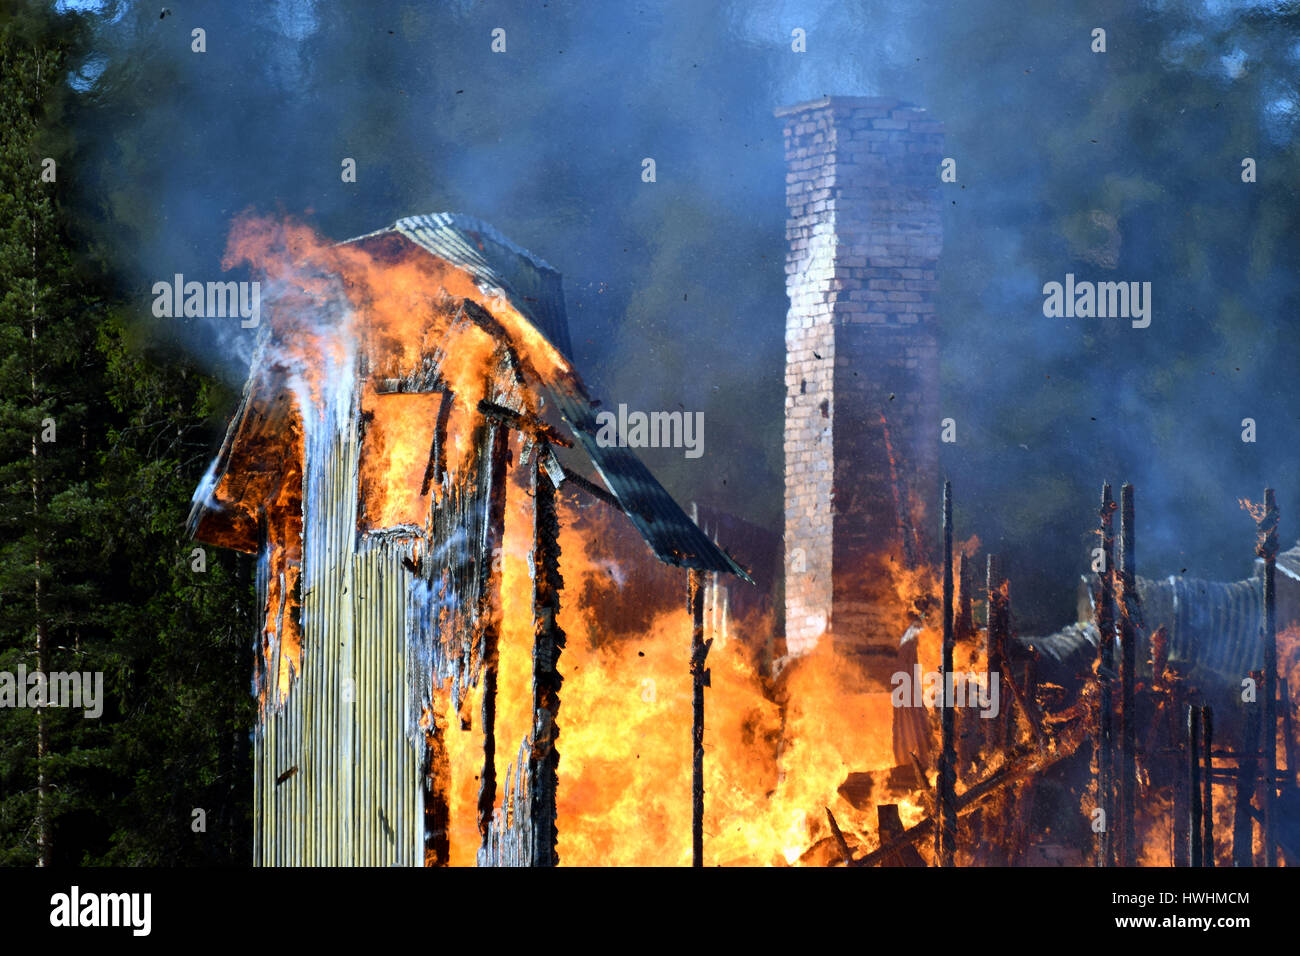 House completely engulfed in flames - Stock Image